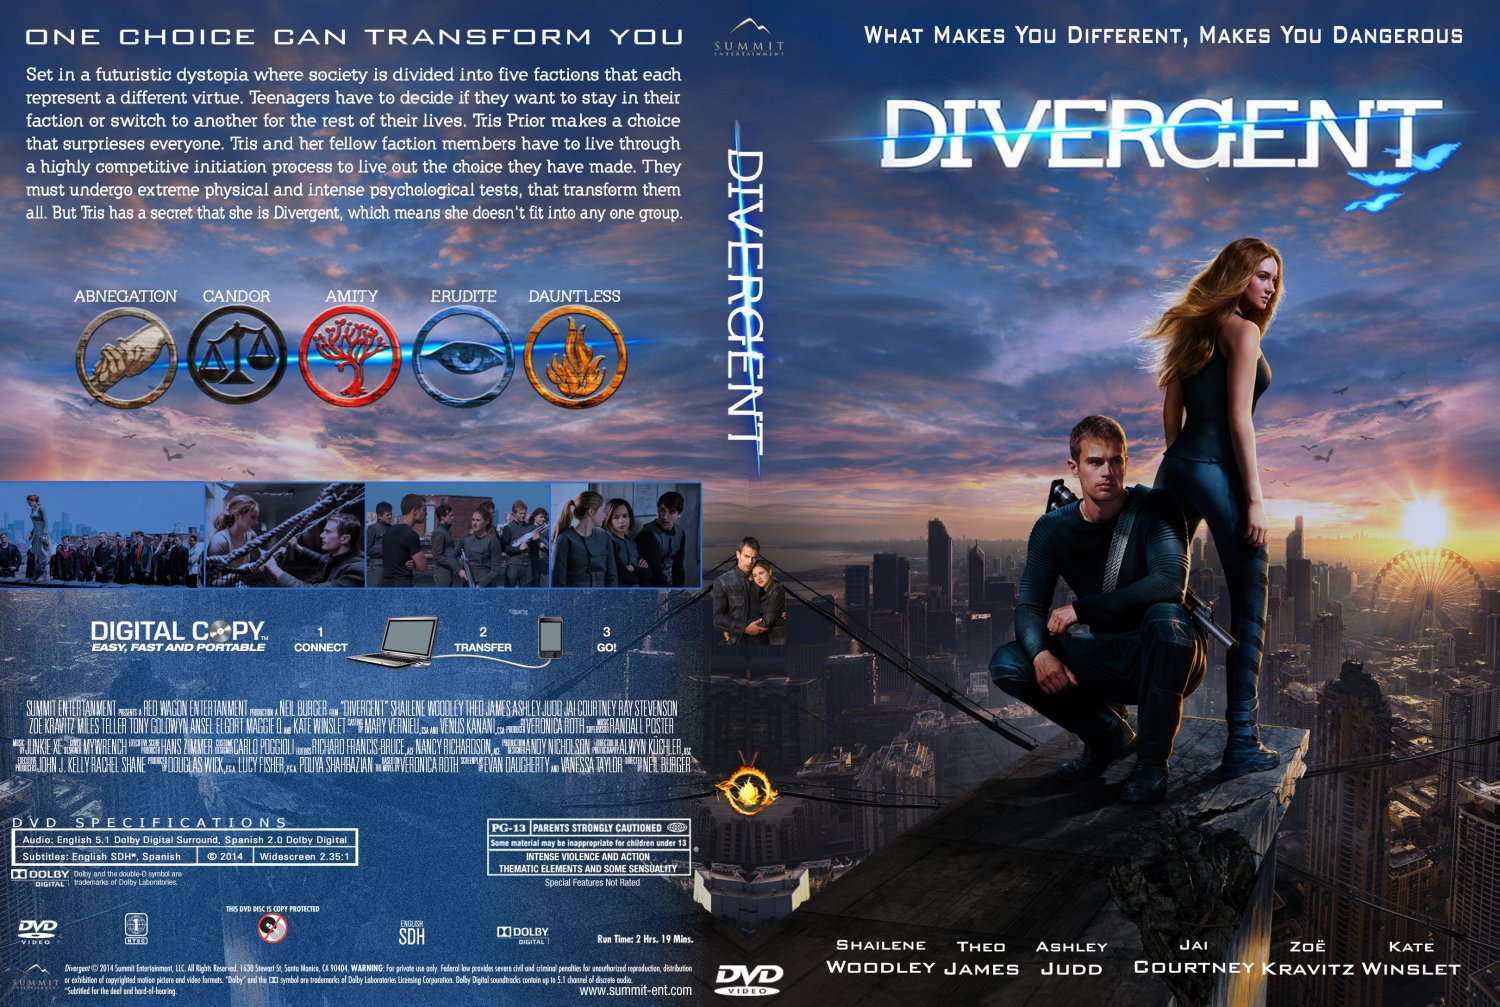 Divergent Dvd cover Re...